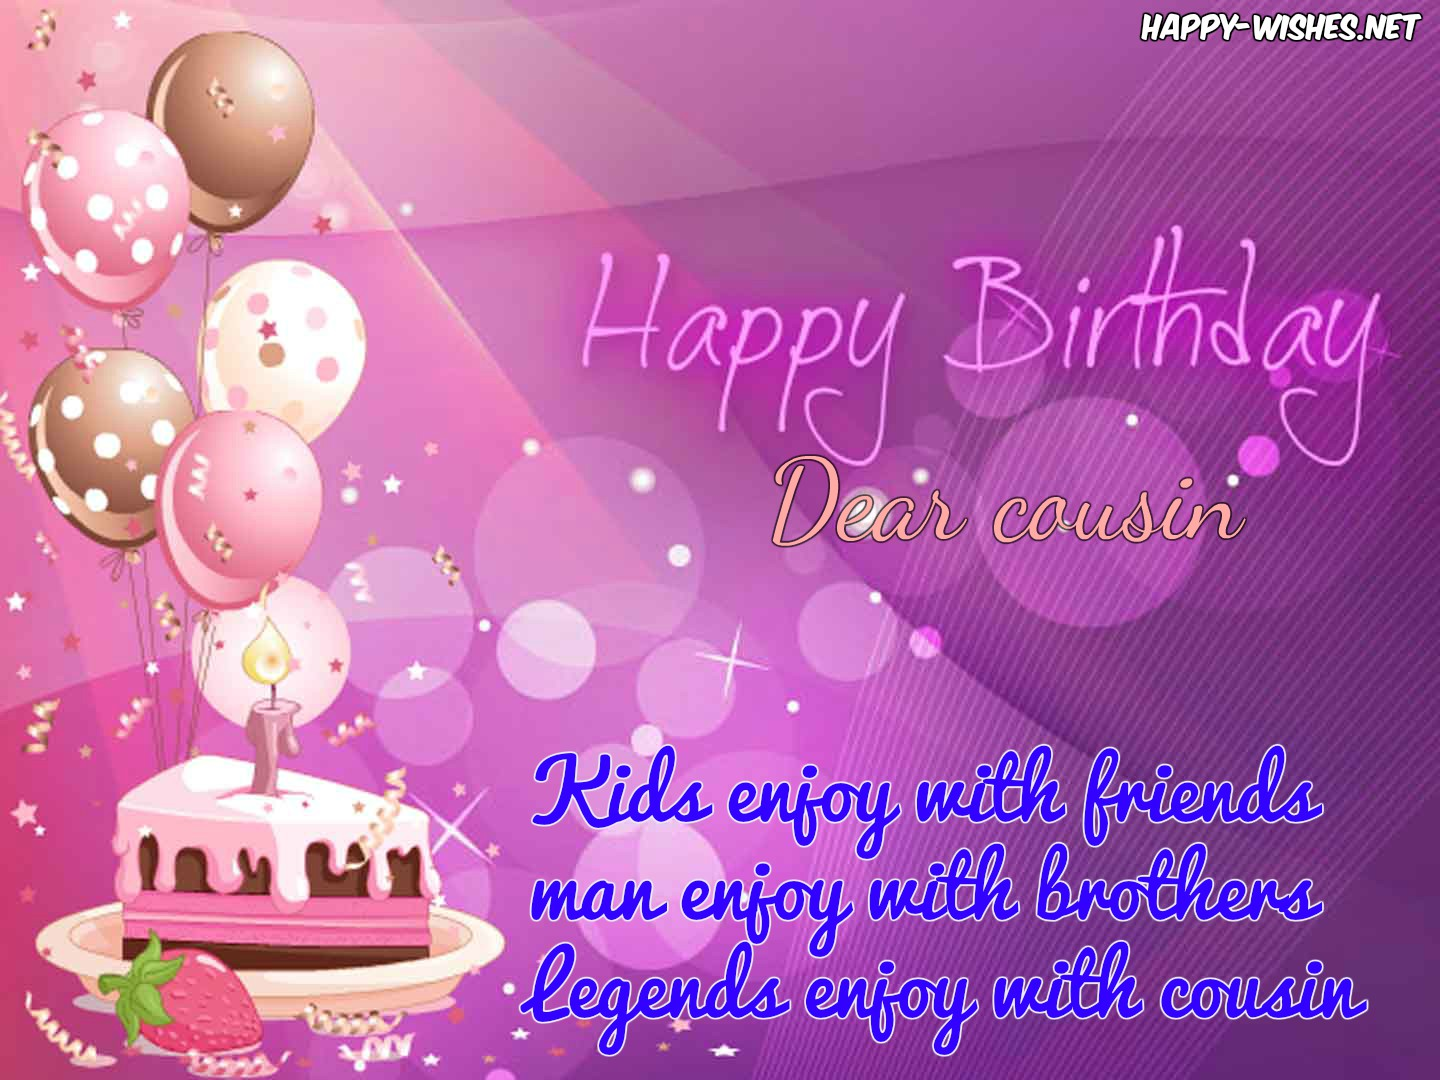 happy birthday cousin pics ; happy-birthday-wishes-to-cousin-best-of-happy-birthday-cousin-quotes-of-happy-birthday-wishes-to-cousin